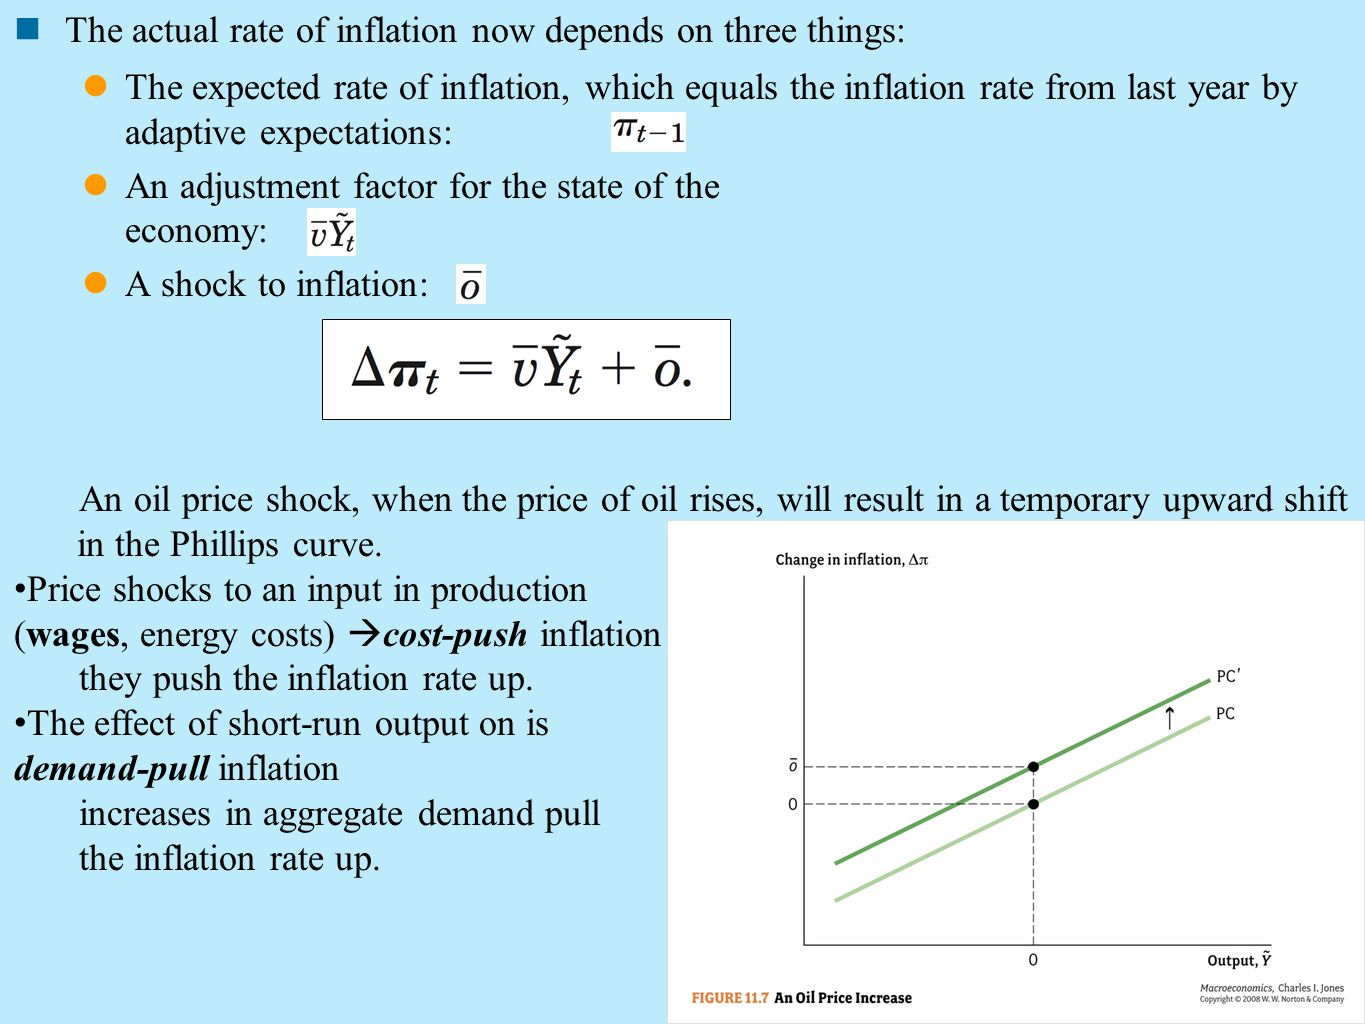 The actual rate of inflation now depends on three things: The expected rate of inflation, which equals the inflation rate from last year by adaptive e